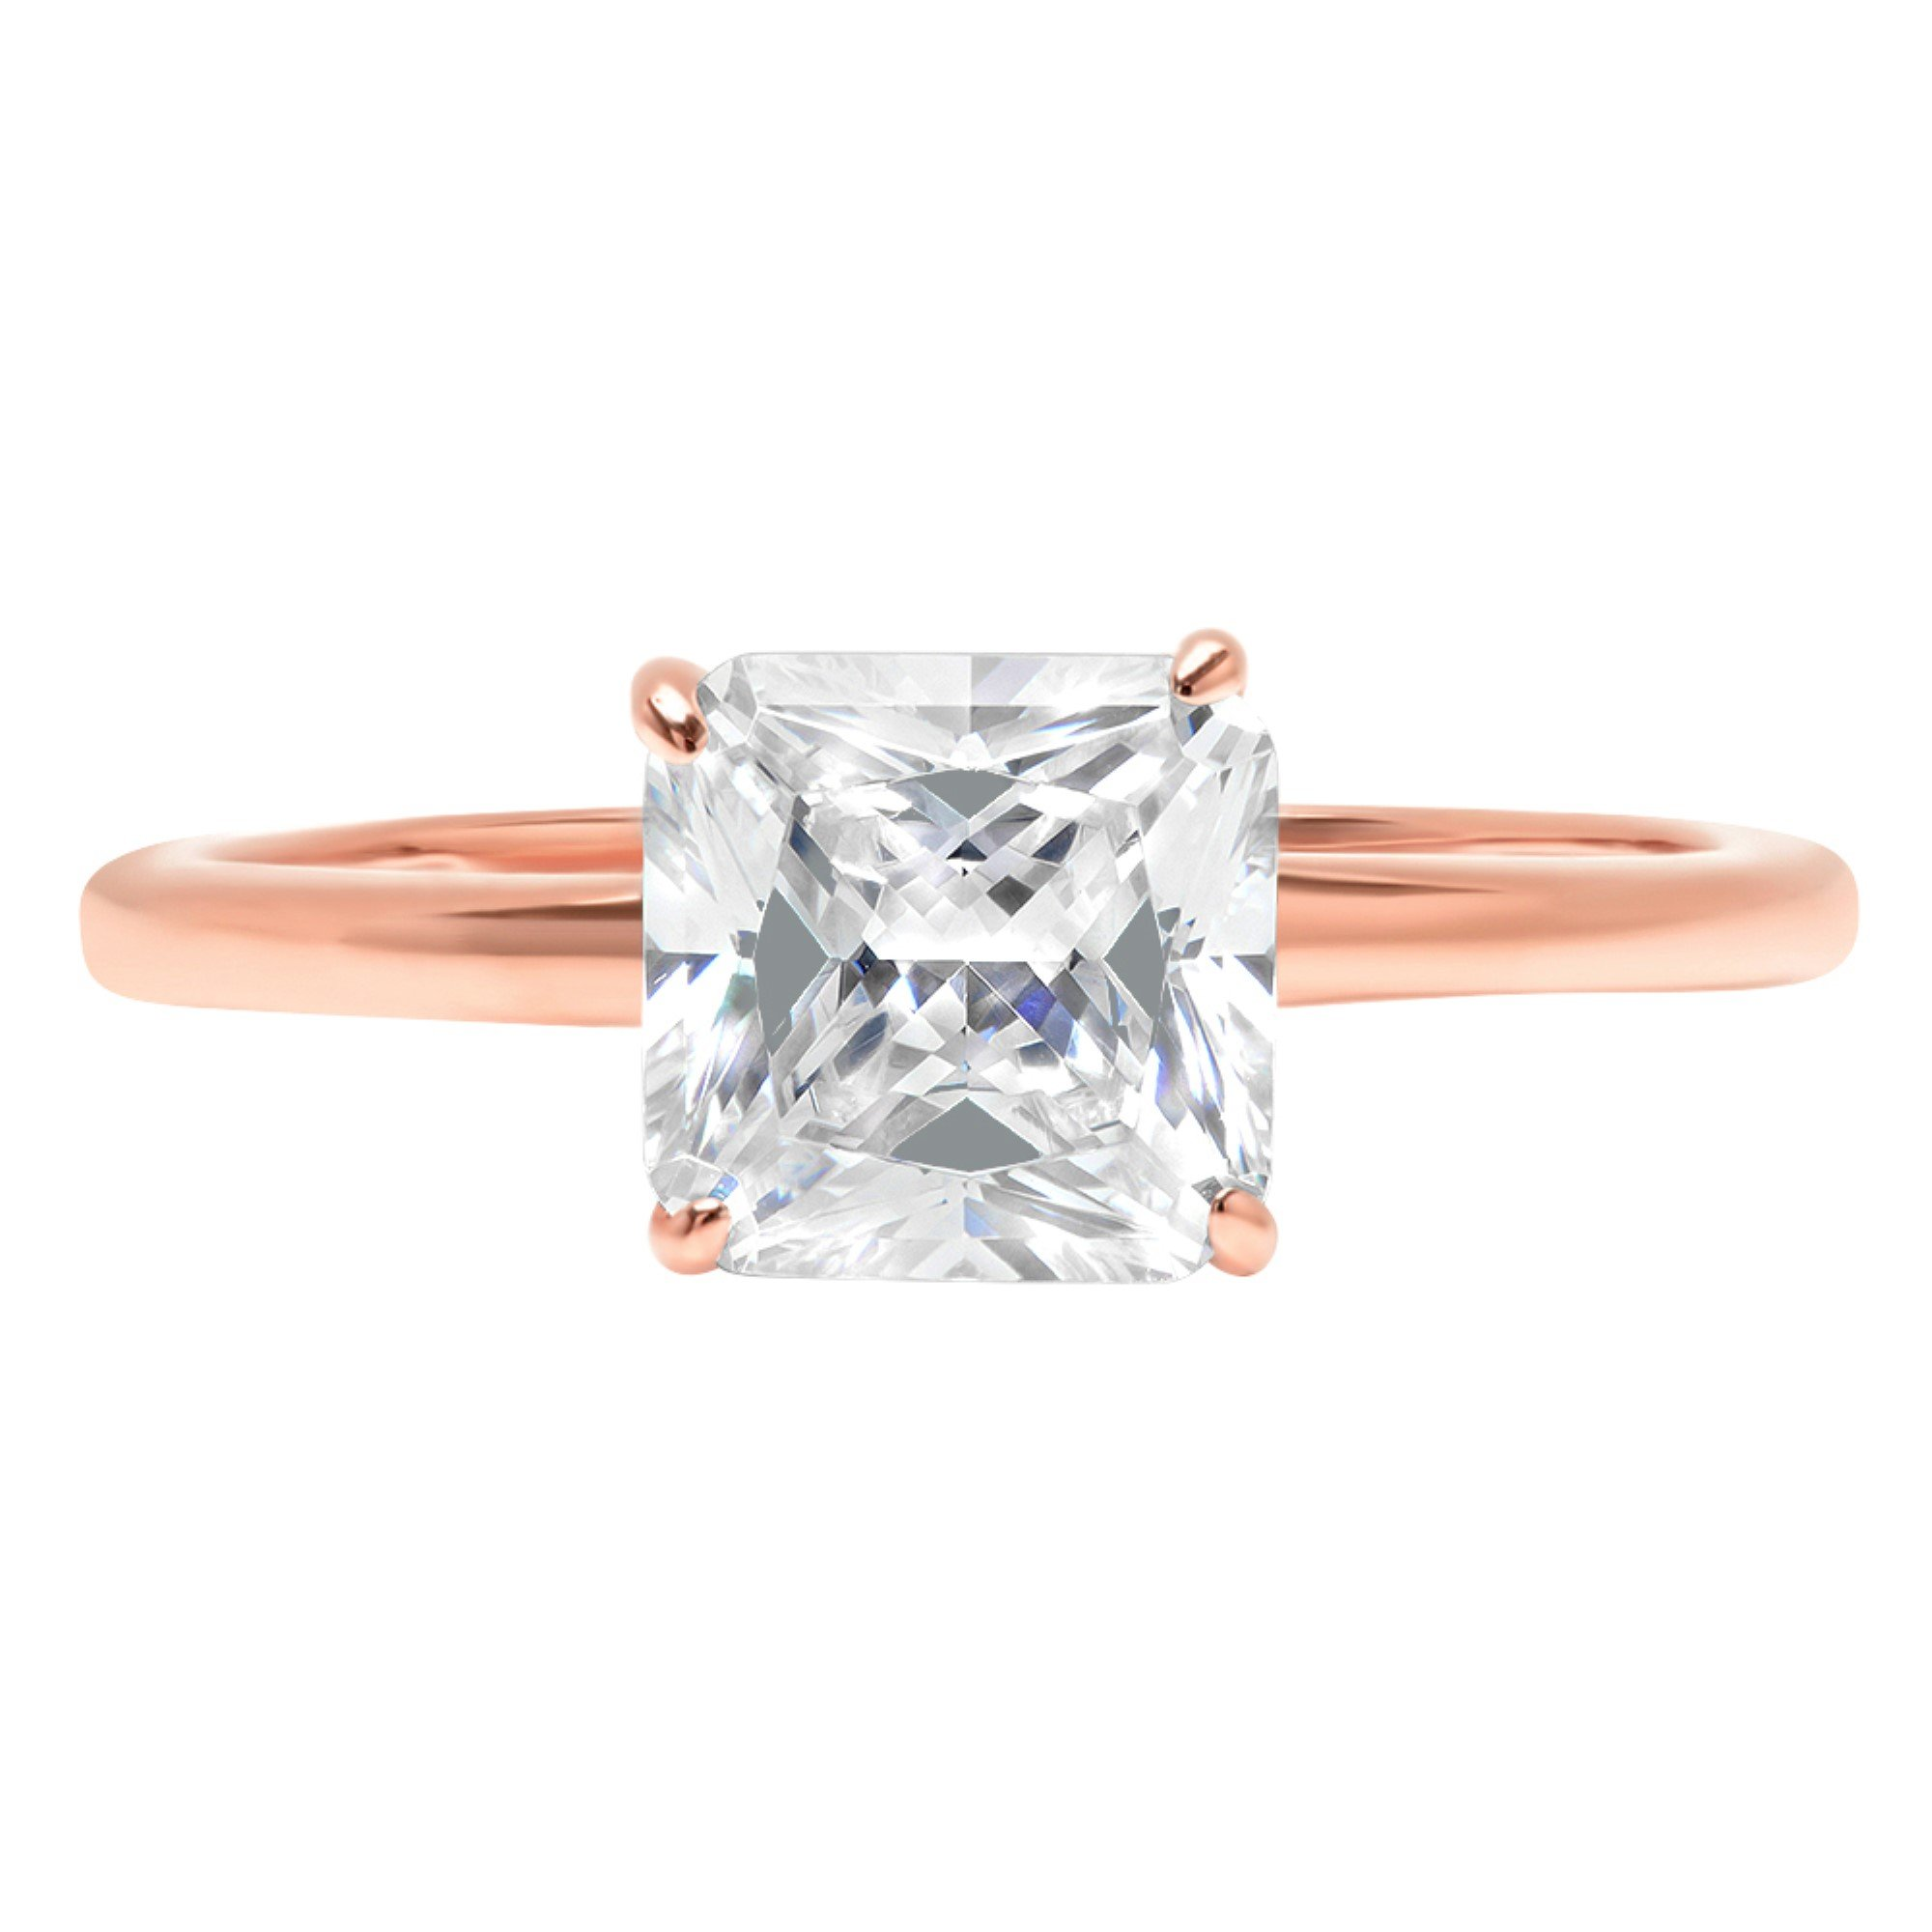 Asscher Brilliant Cut Classic Solitaire Designer Wedding Bridal Statement Anniversary Engagement Promise Ring Solid 14k Rose Gold, 2.2ct, 6.75 by Clara Pucci